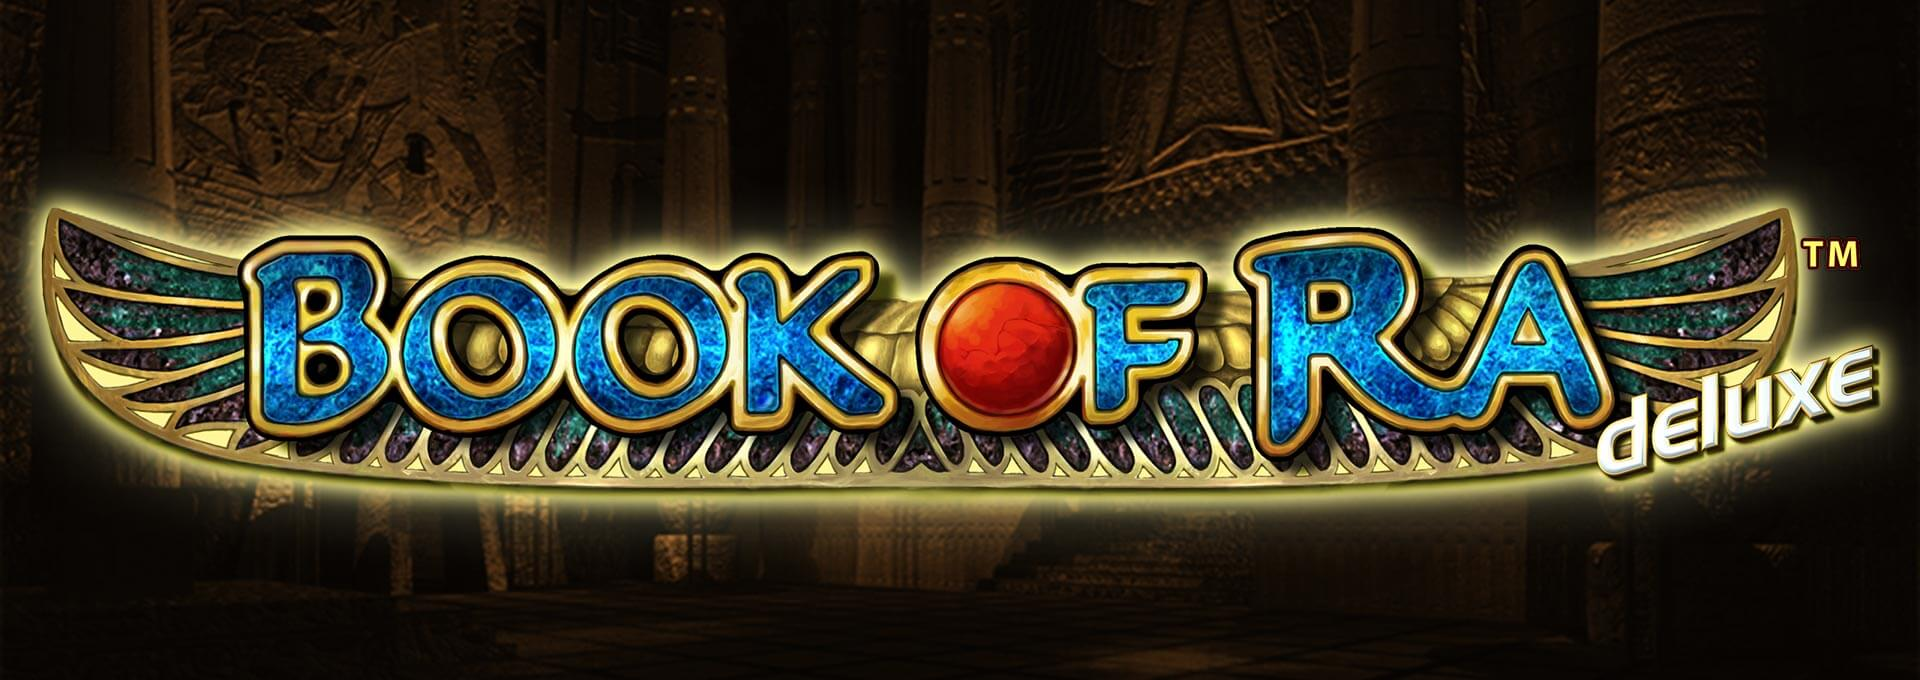 casino book of ra online s